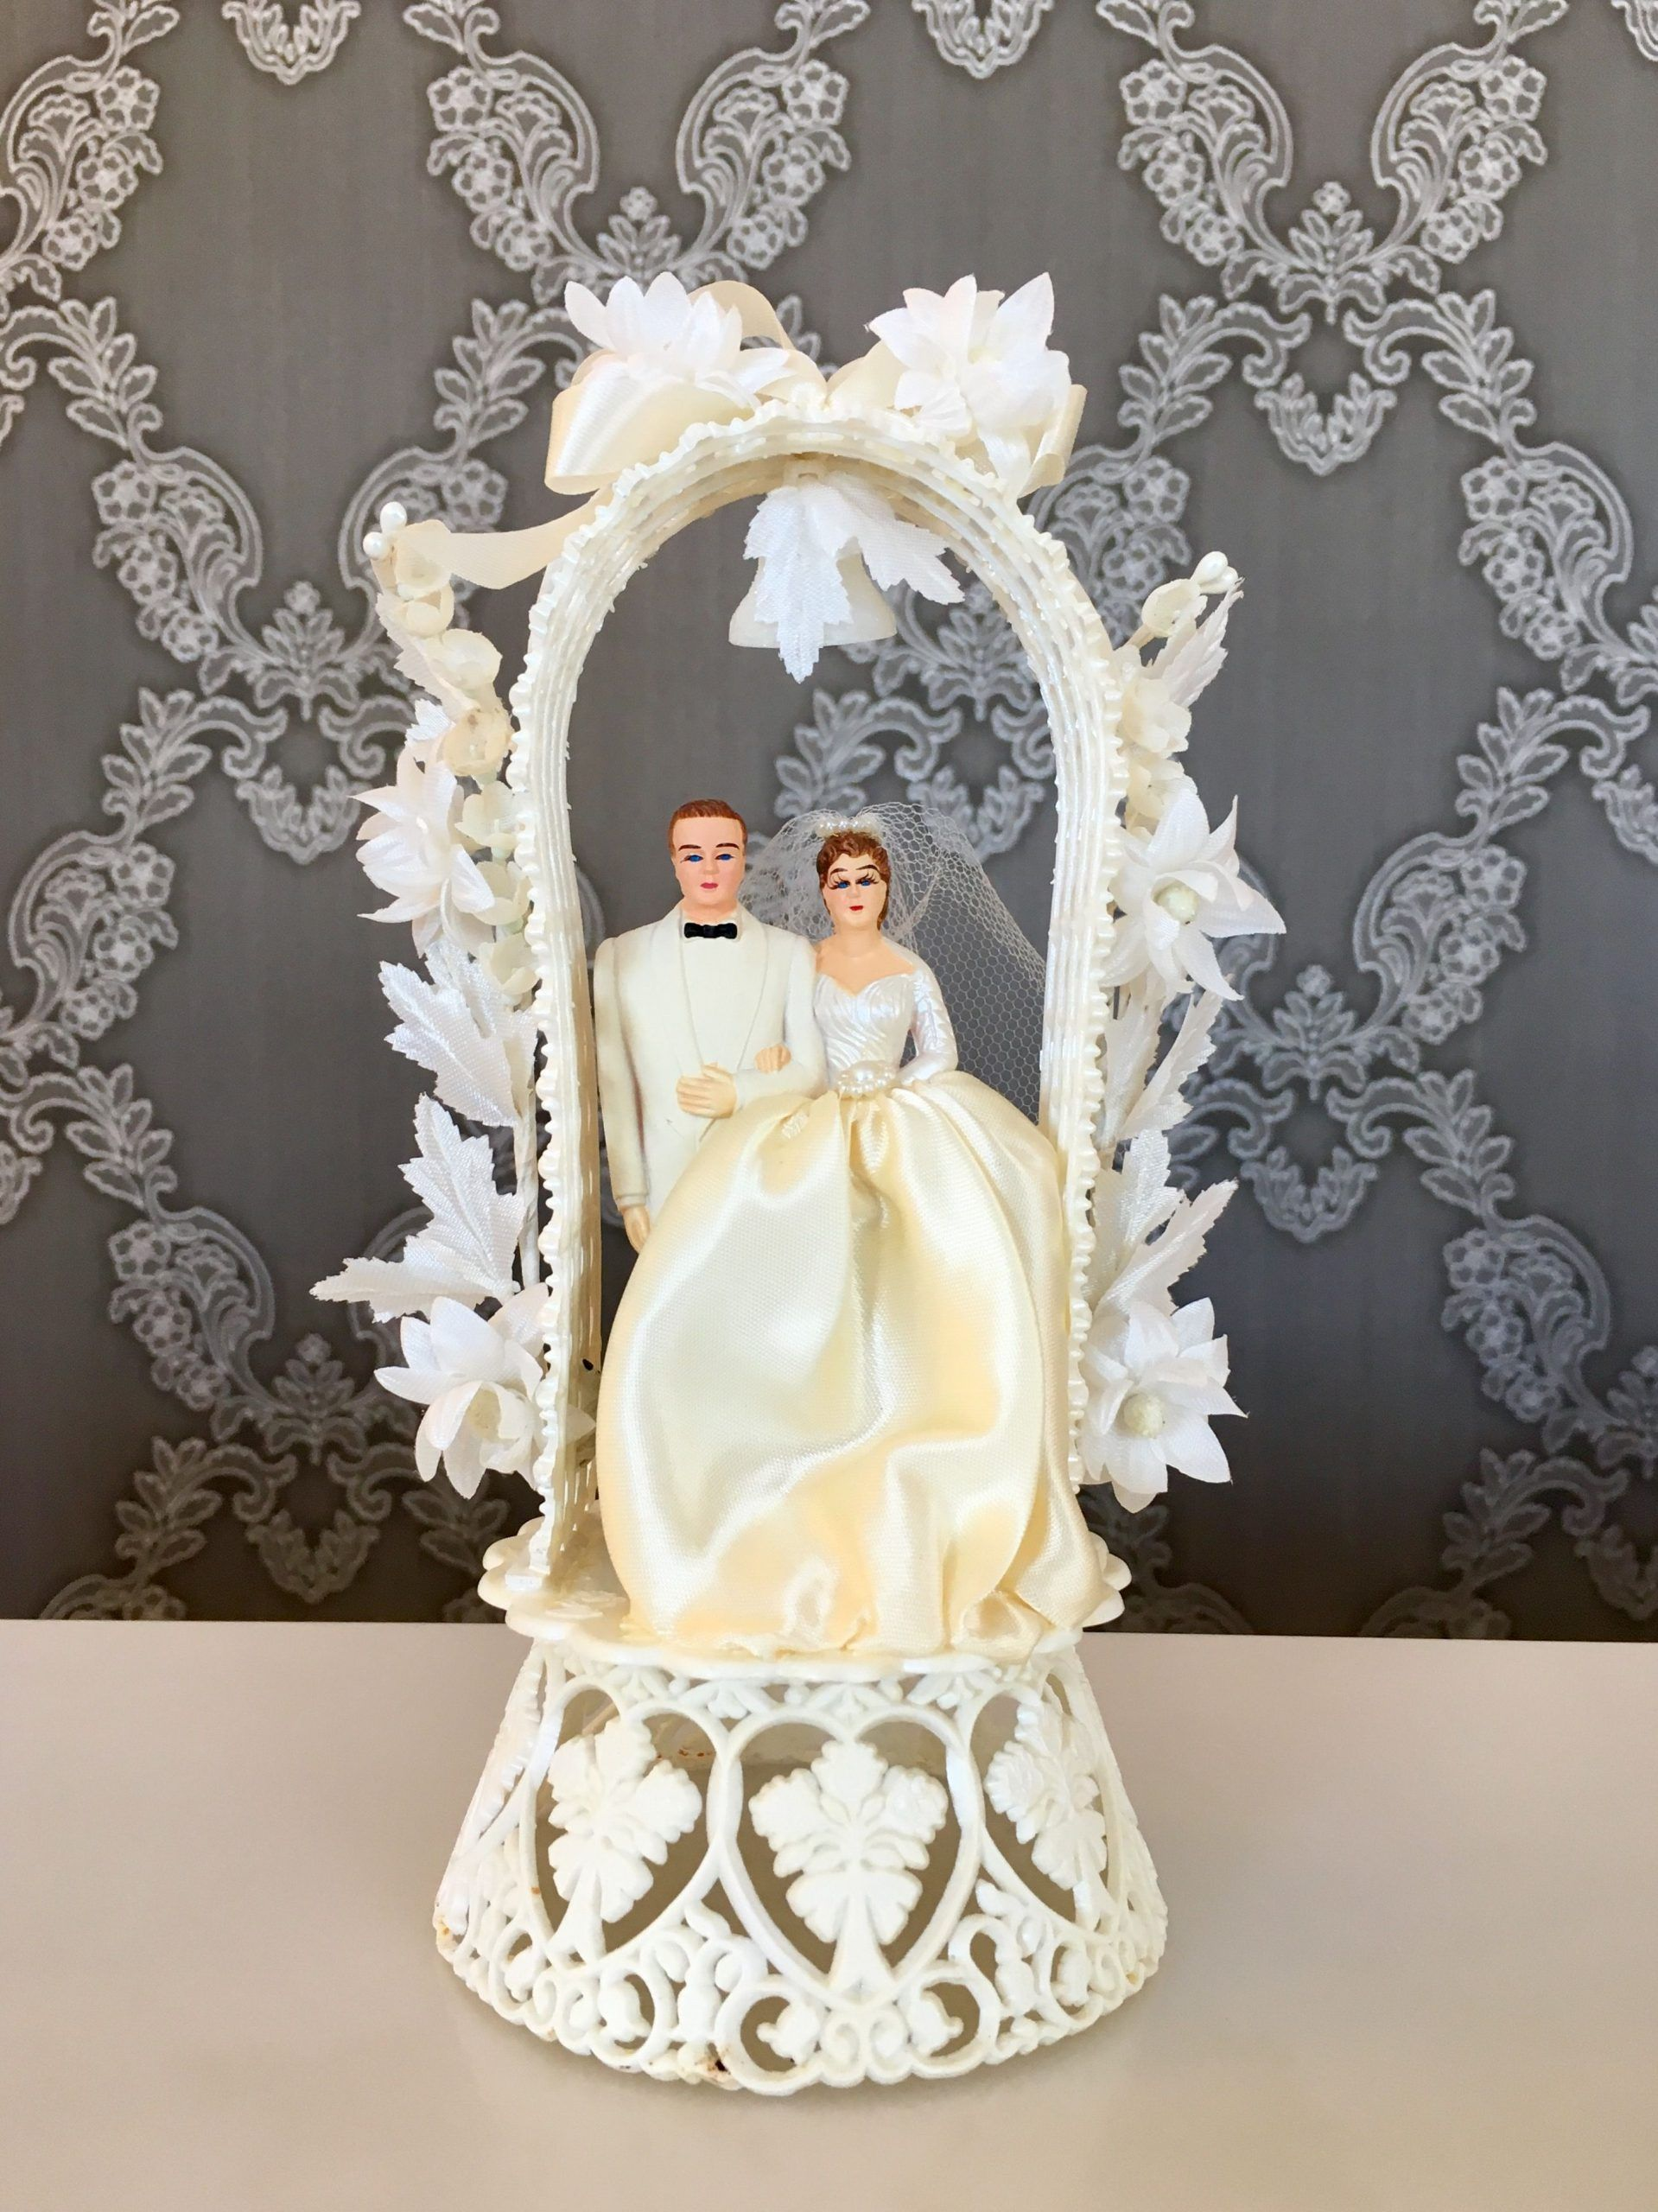 Vintage Wedding Cake Toppers For Ideas 2020 Wedding Ideas Makeit In 2020 Wedding Cake Toppers Uk Wedding Cake Toppers Vintage Cake Toppers